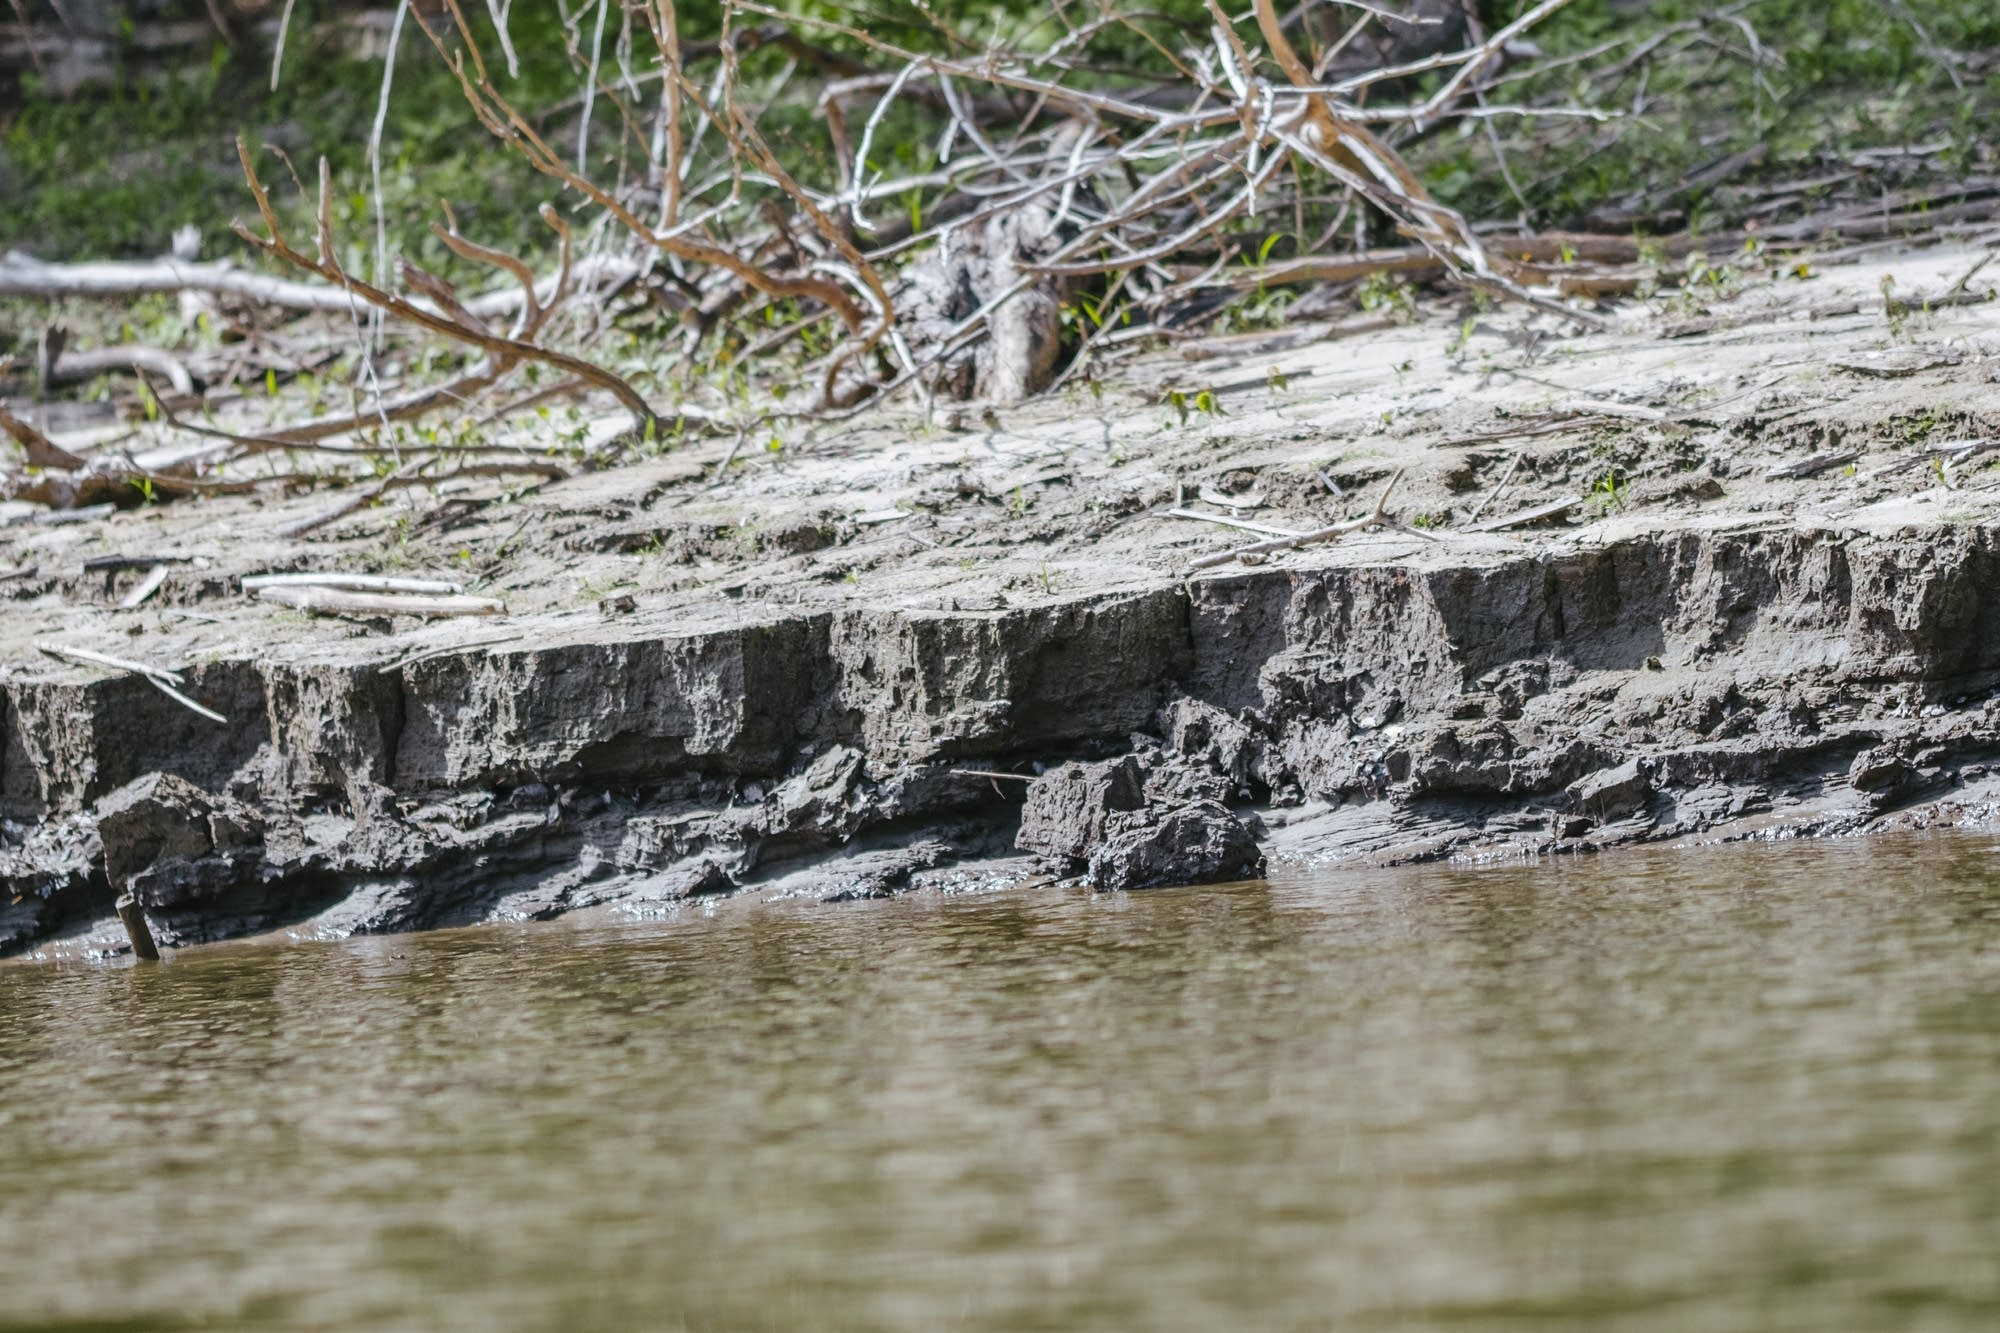 Erosion cuts away the shoreline of the Mississippi River.